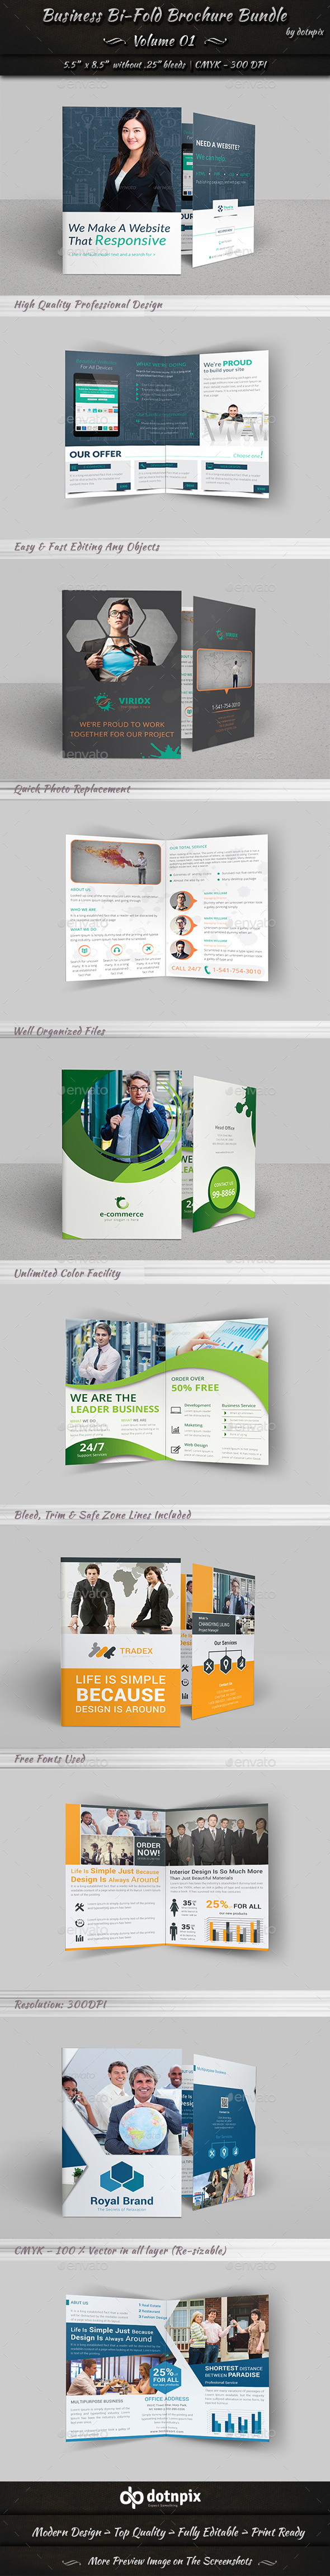 GraphicRiver Business Bi-Fold Brochure Bundle Volume 1 11266155